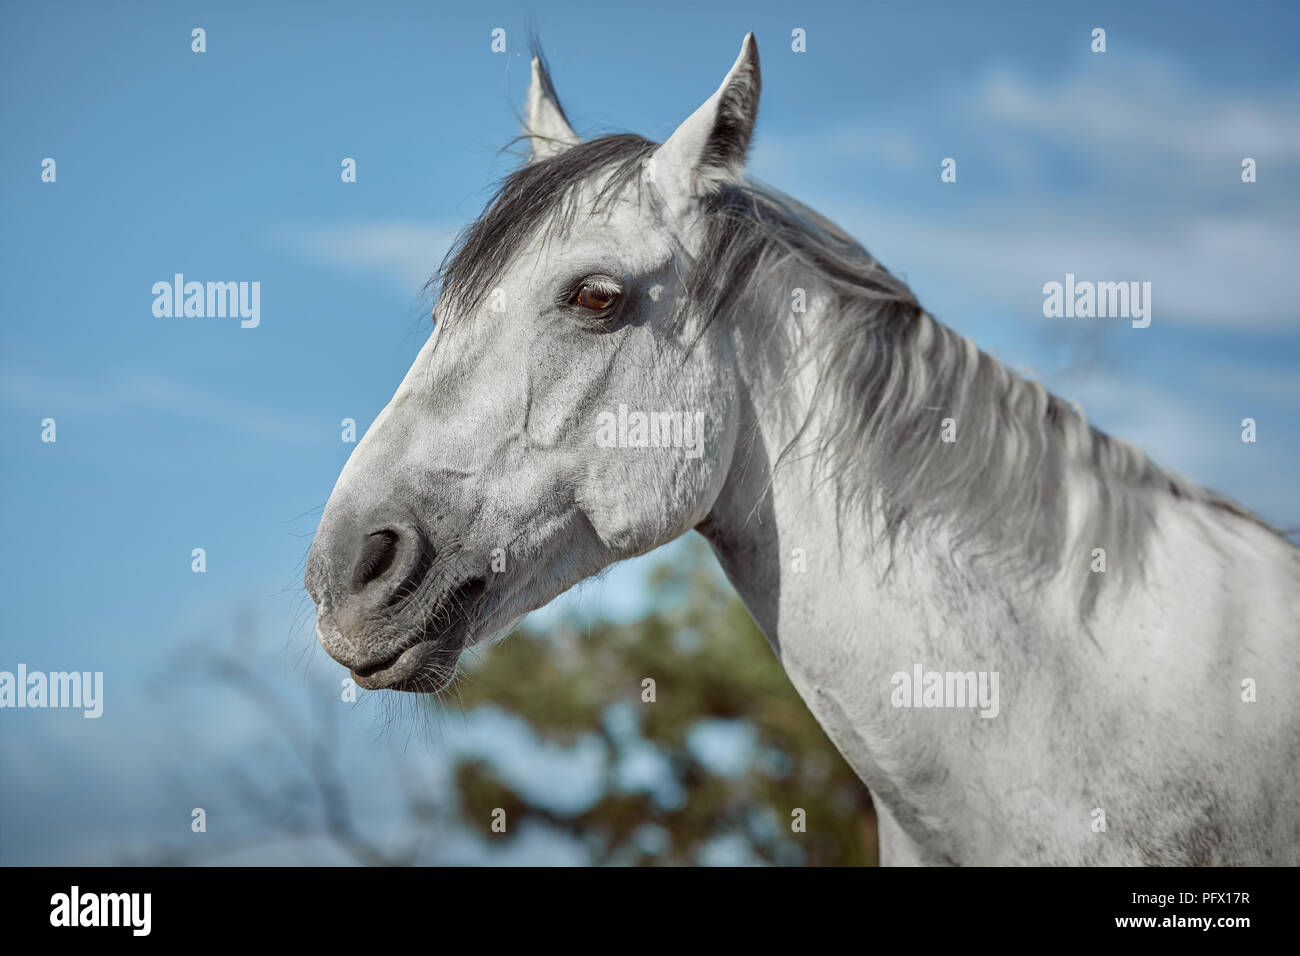 Grey Horse High Resolution Stock Photography And Images Alamy